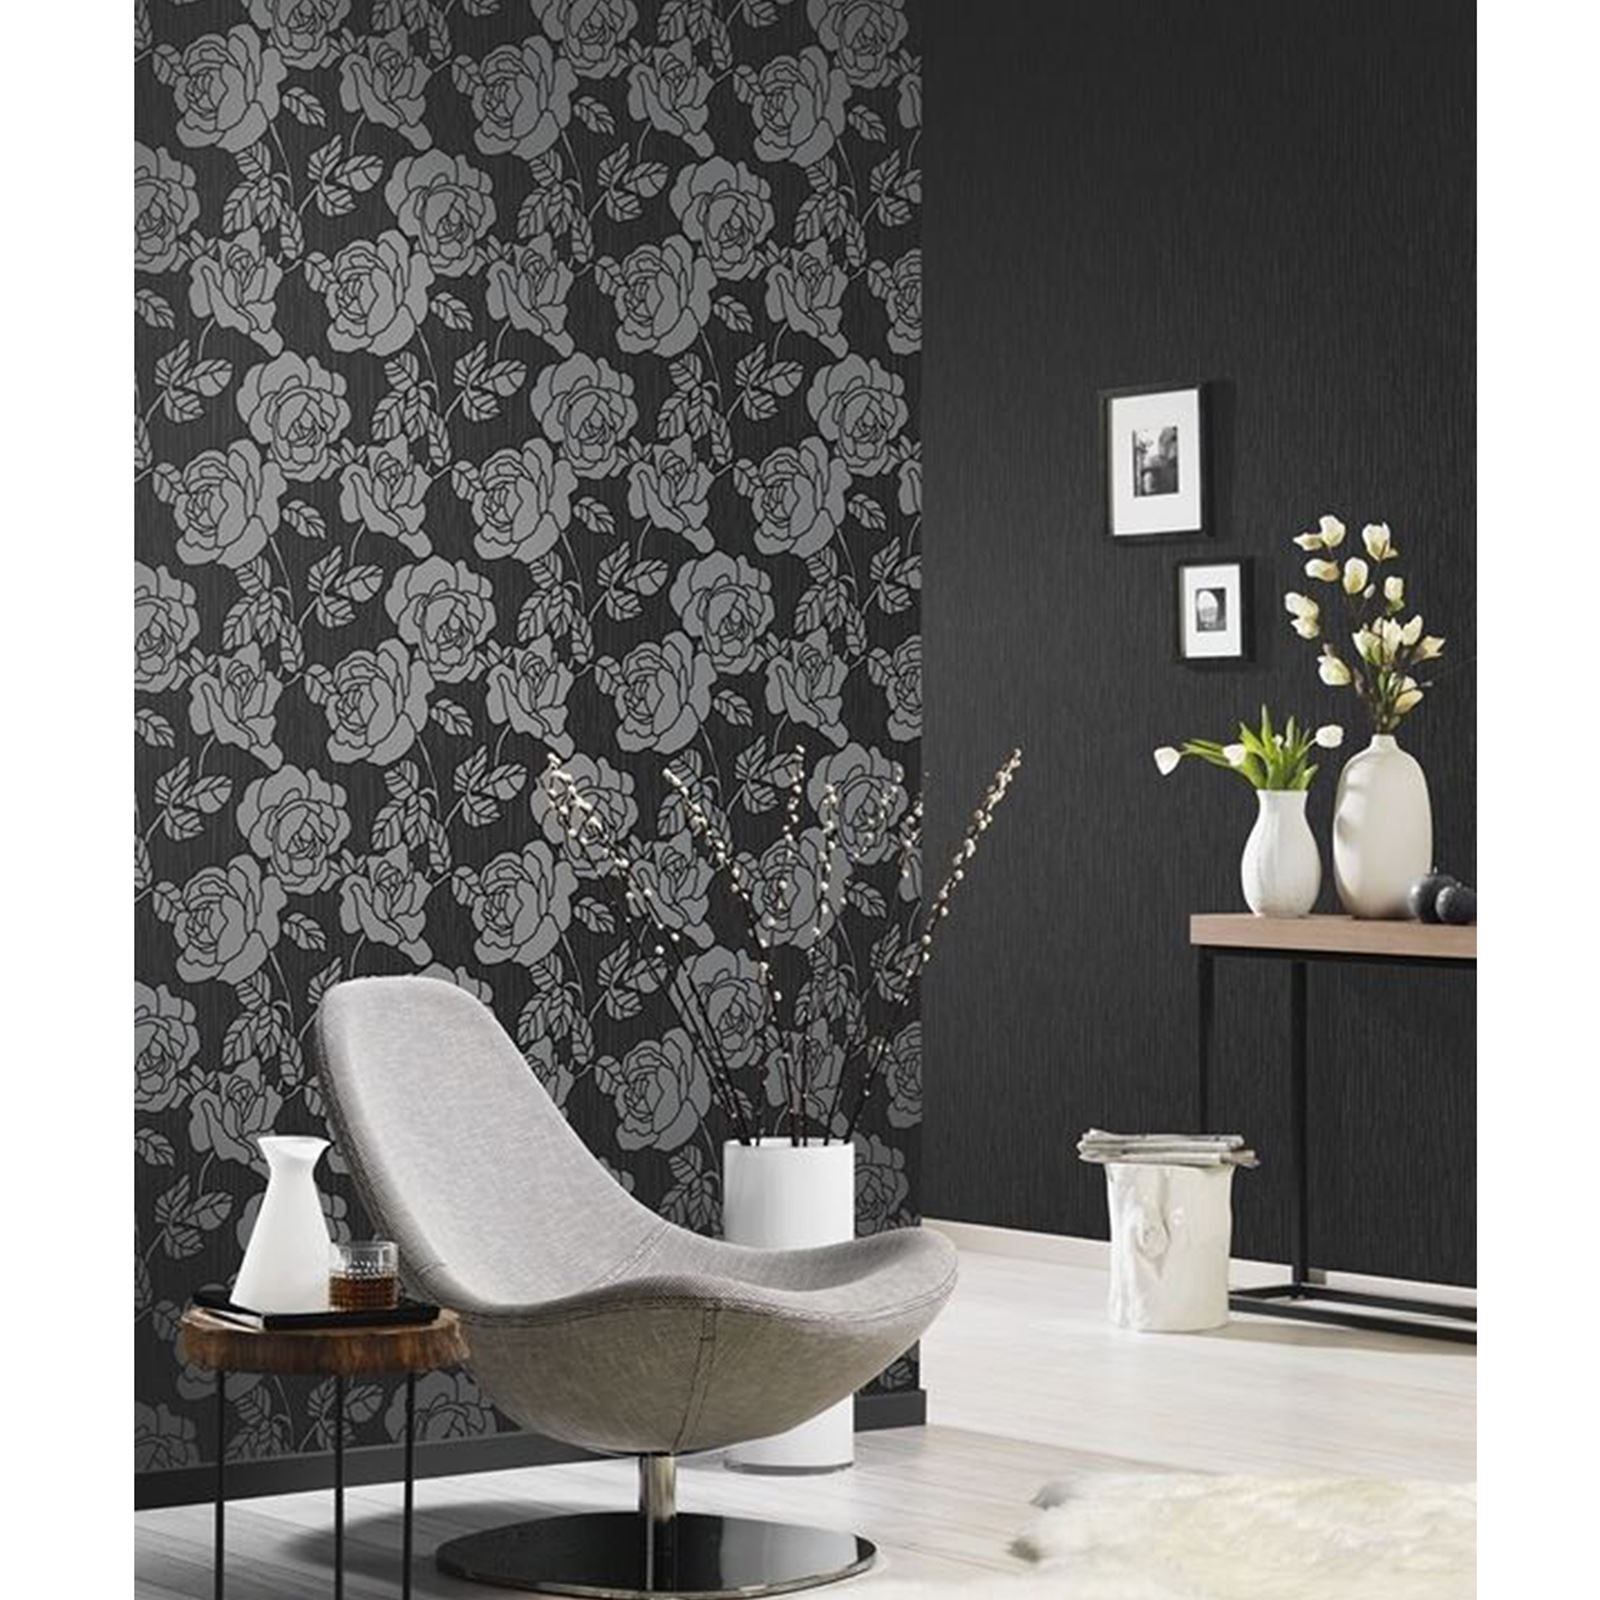 opal blumenmuster glitzer tapete schwarz silber p s 02492 10 blumen neu ebay. Black Bedroom Furniture Sets. Home Design Ideas